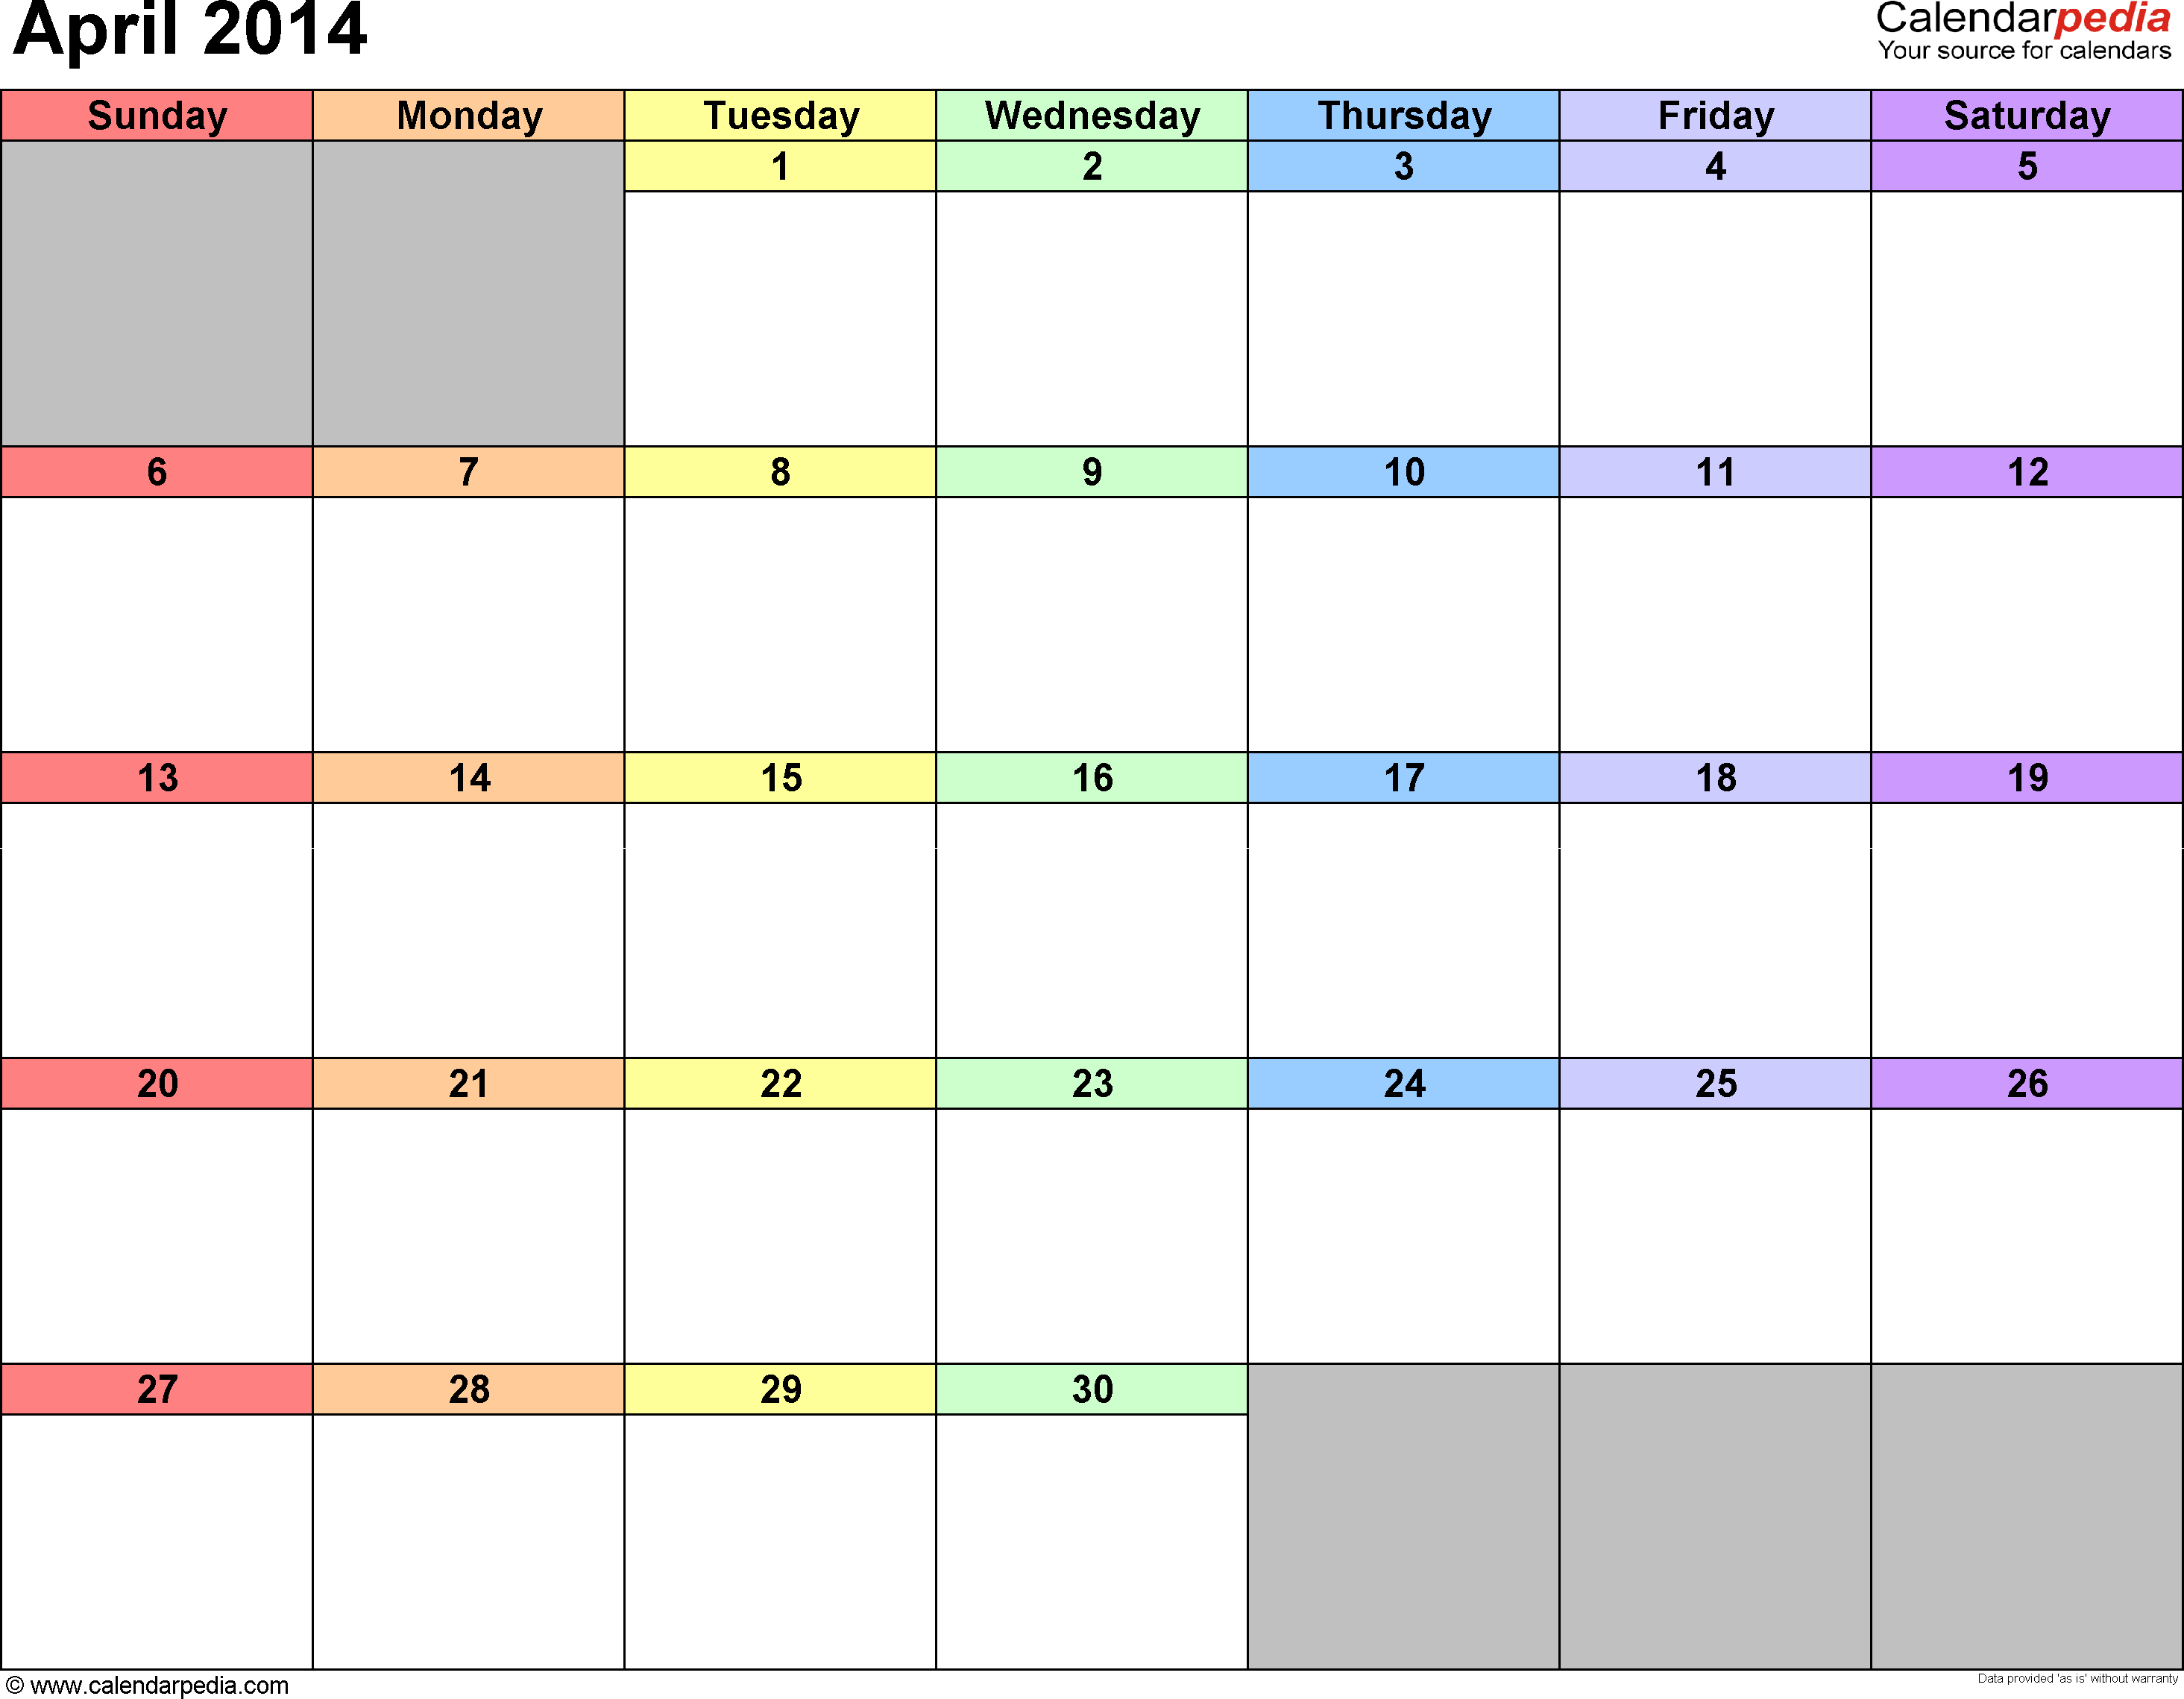 April 2014 calendar printable template